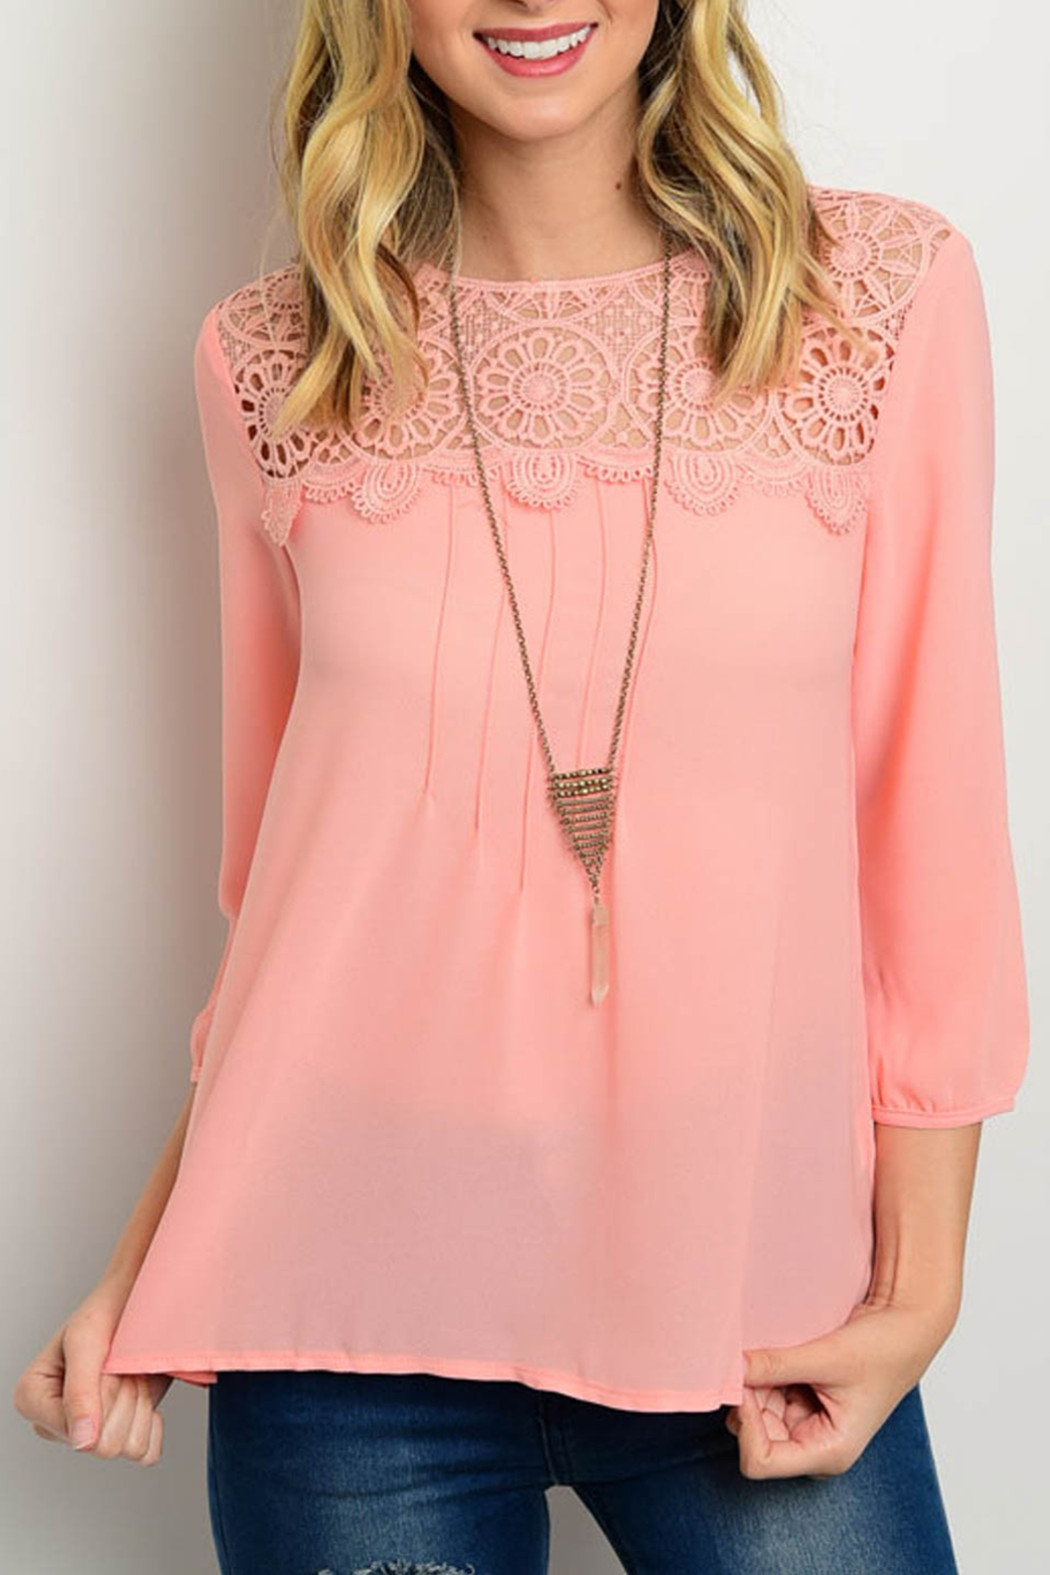 Roly Poly Salmon Crochet Blouse - Main Image